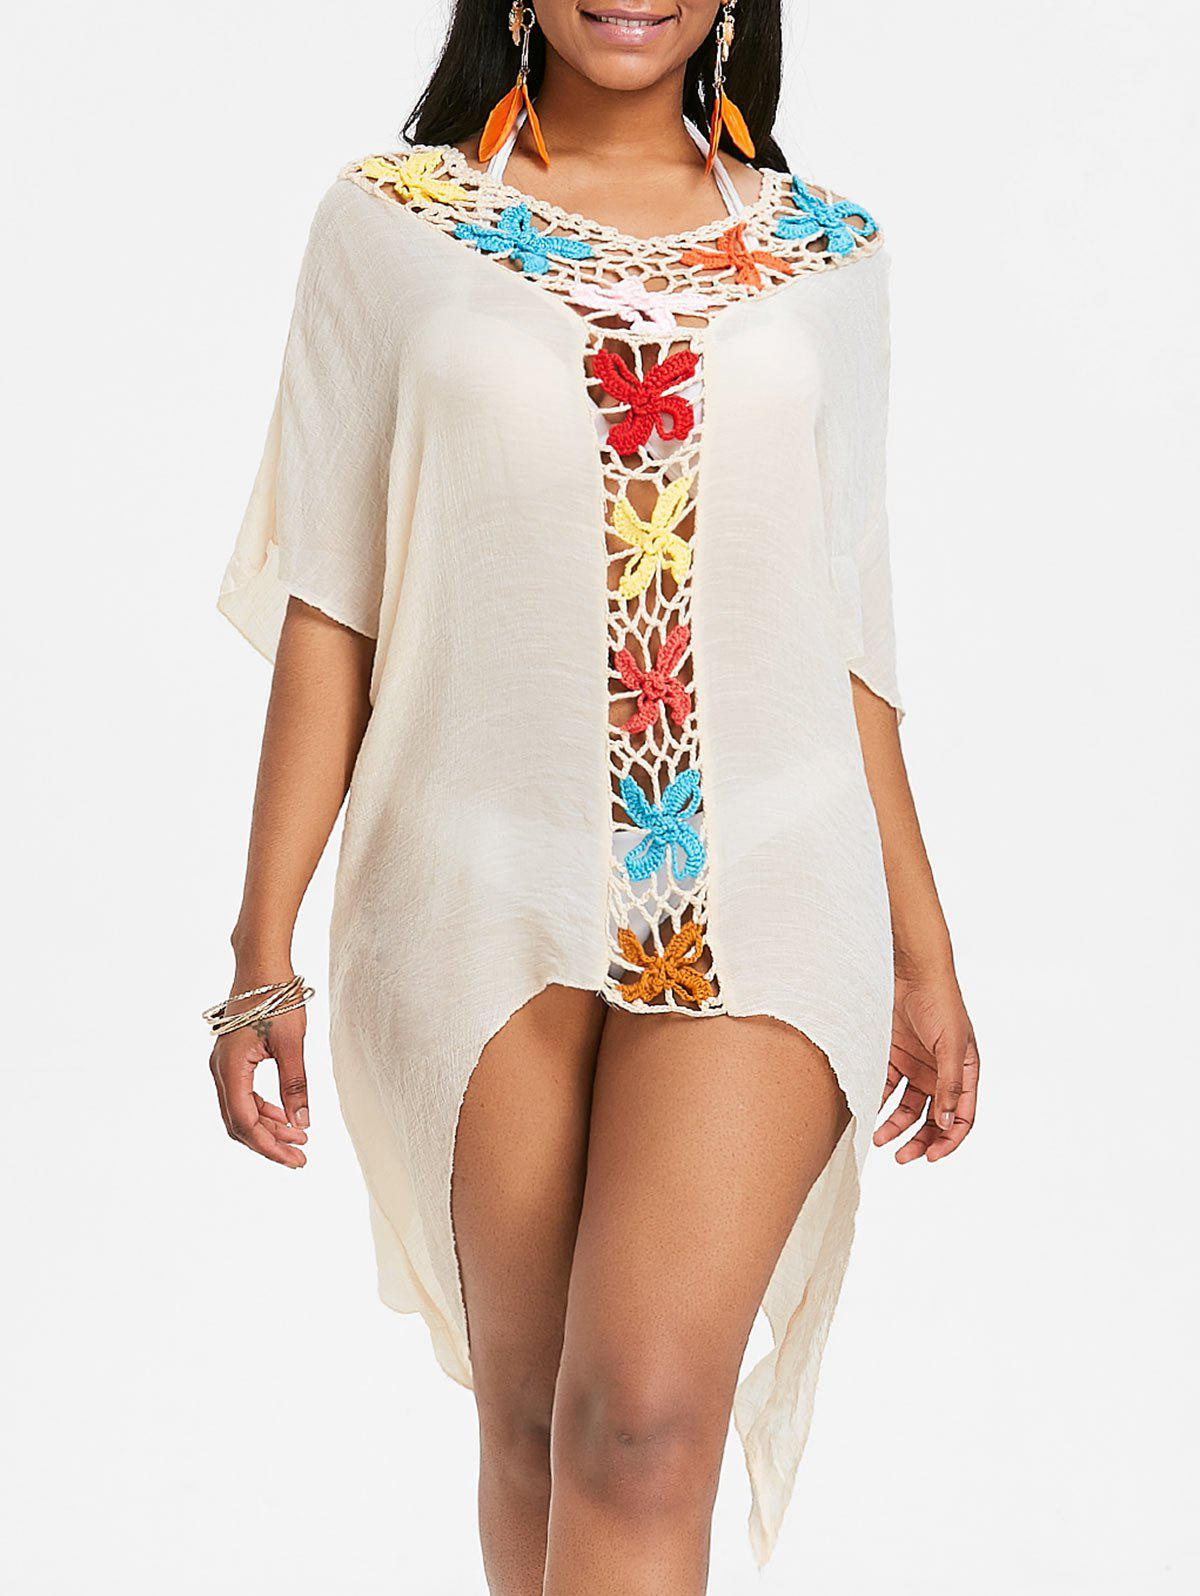 Chic Asymmetric Sheer Crochet Panel Cover Up